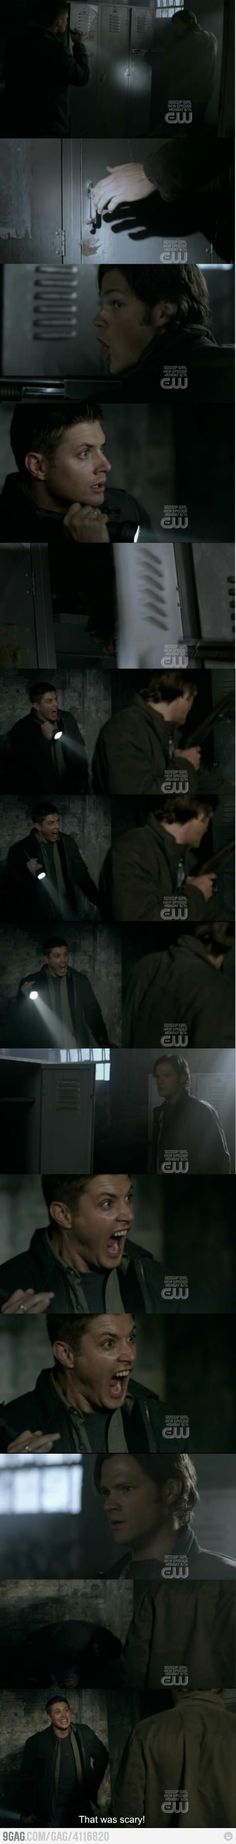 Probably my favorite scene from my favorite episode!  (Not counting that post credit song of awesomeness, of course!)